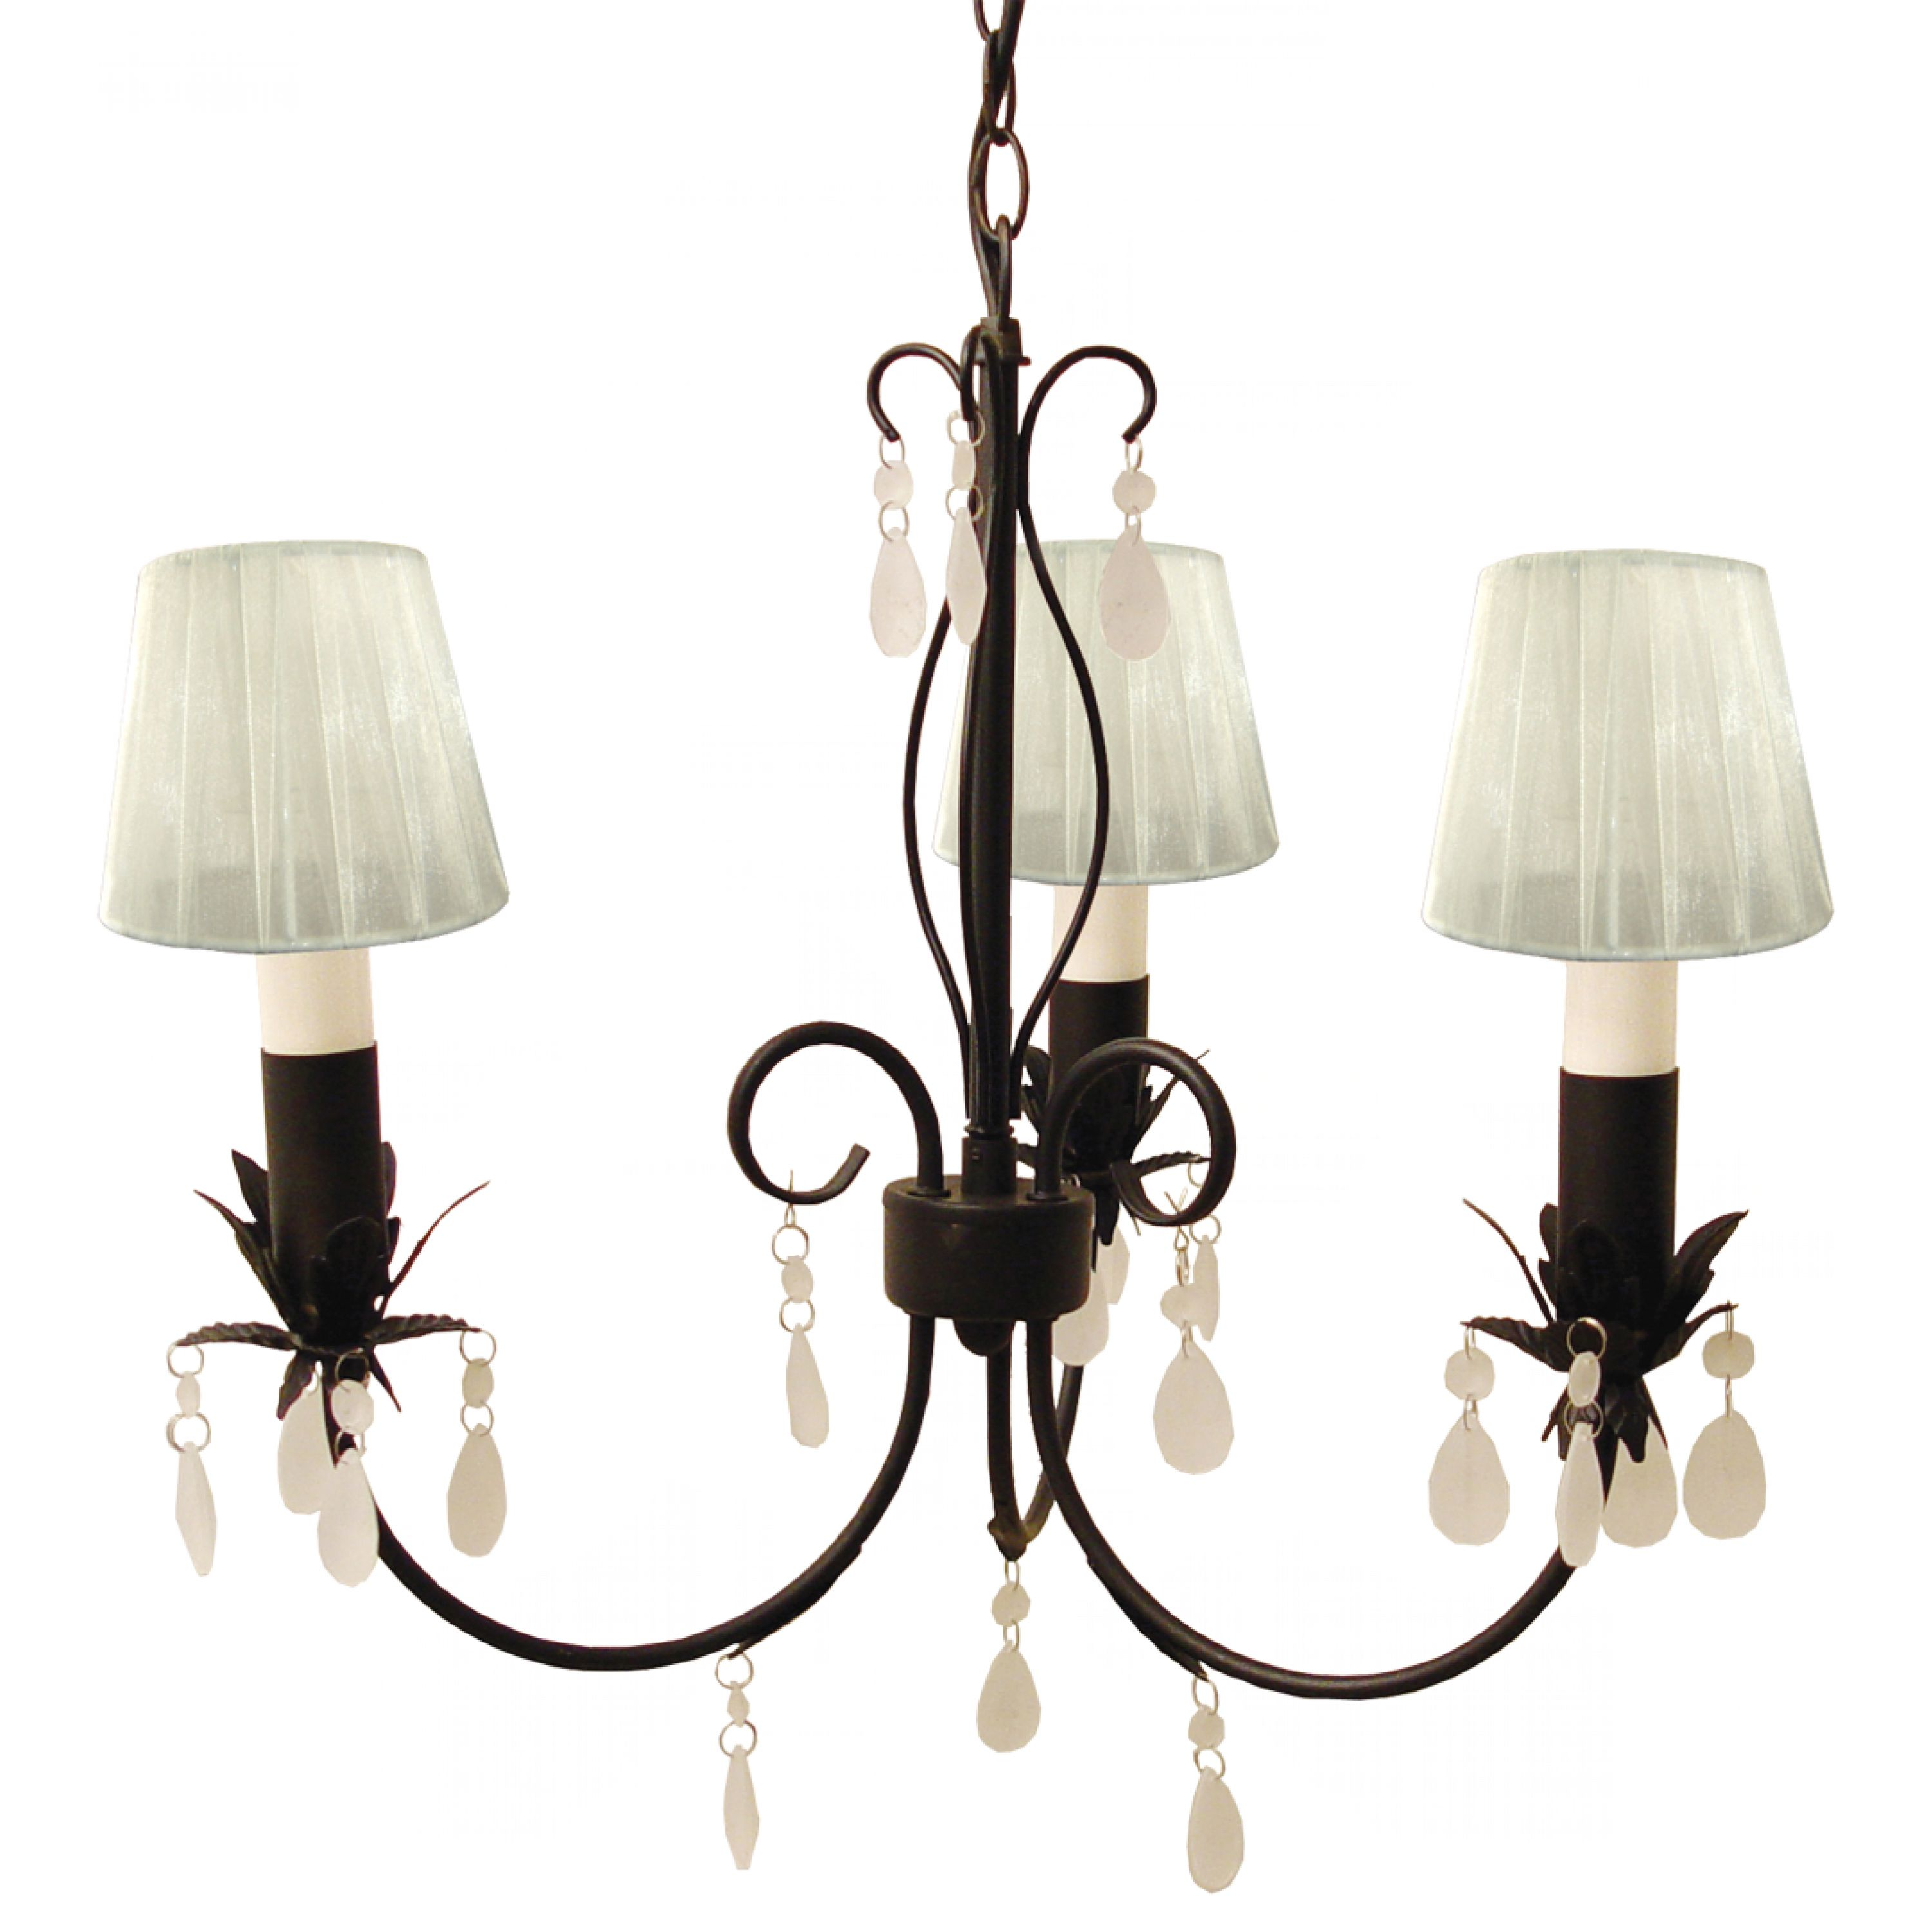 Belfry 9 Light (bronze, brown)